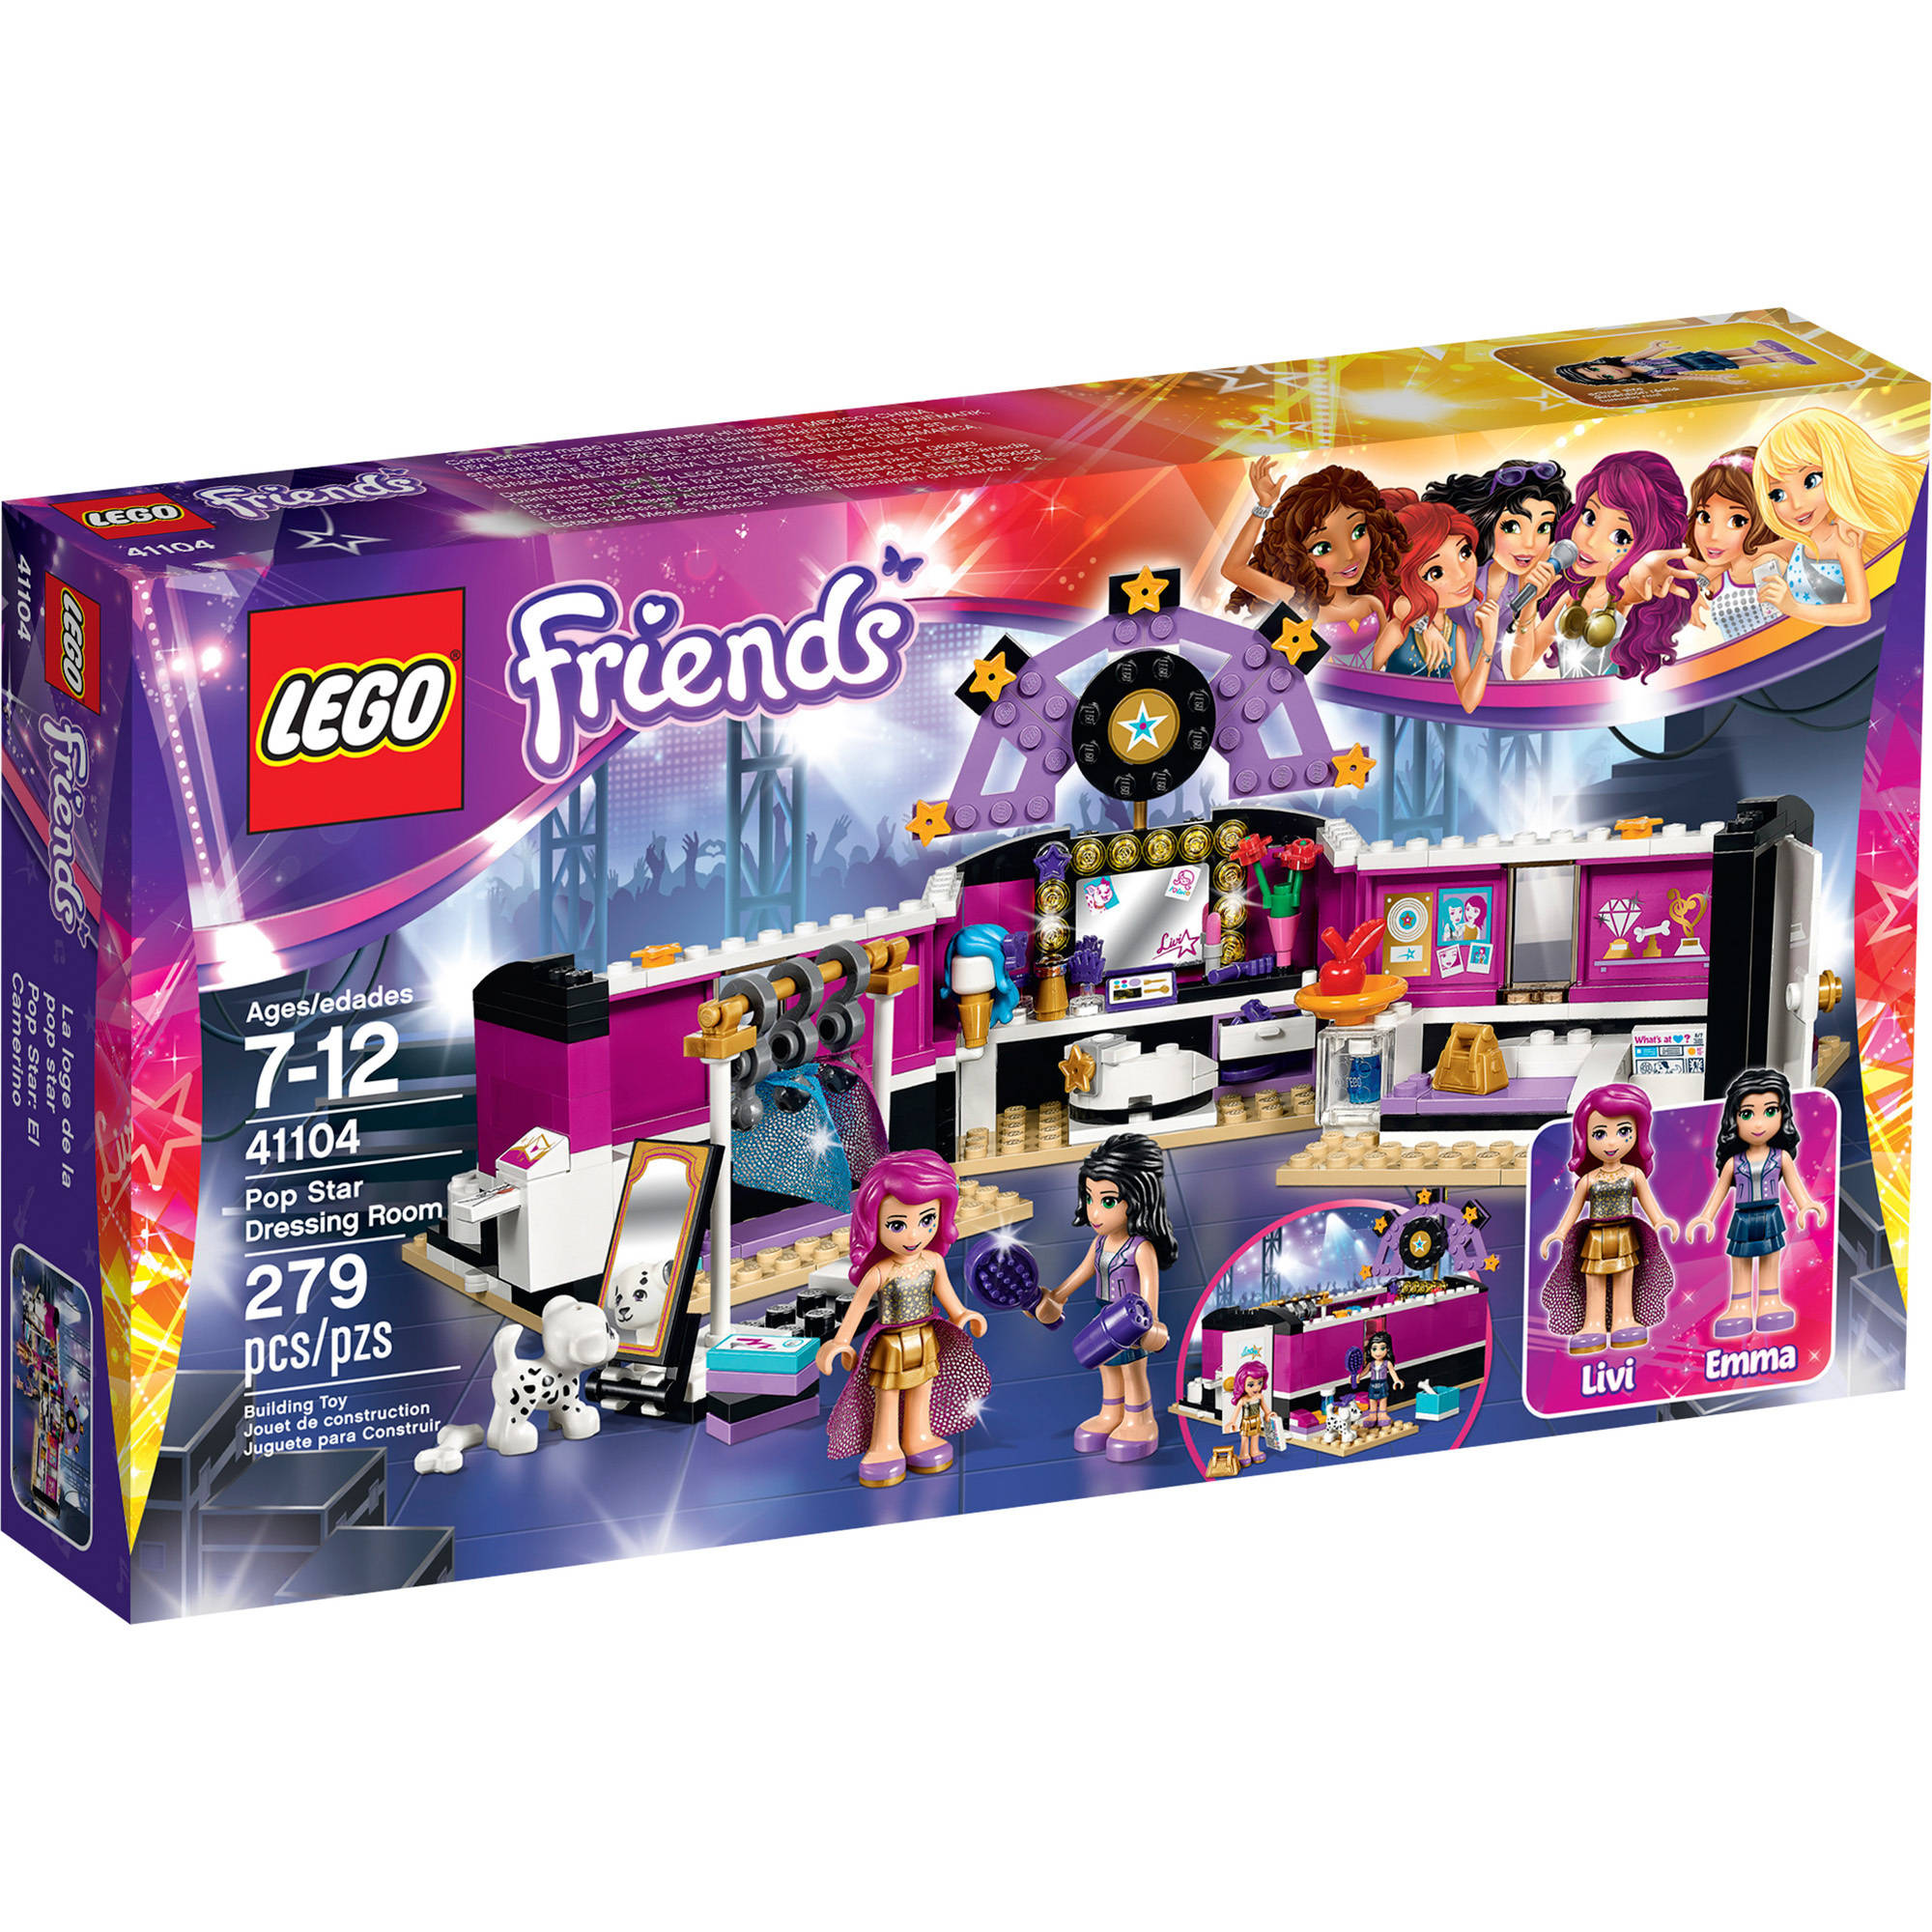 LEGO Friends Pop Star Dressing Room, 41104